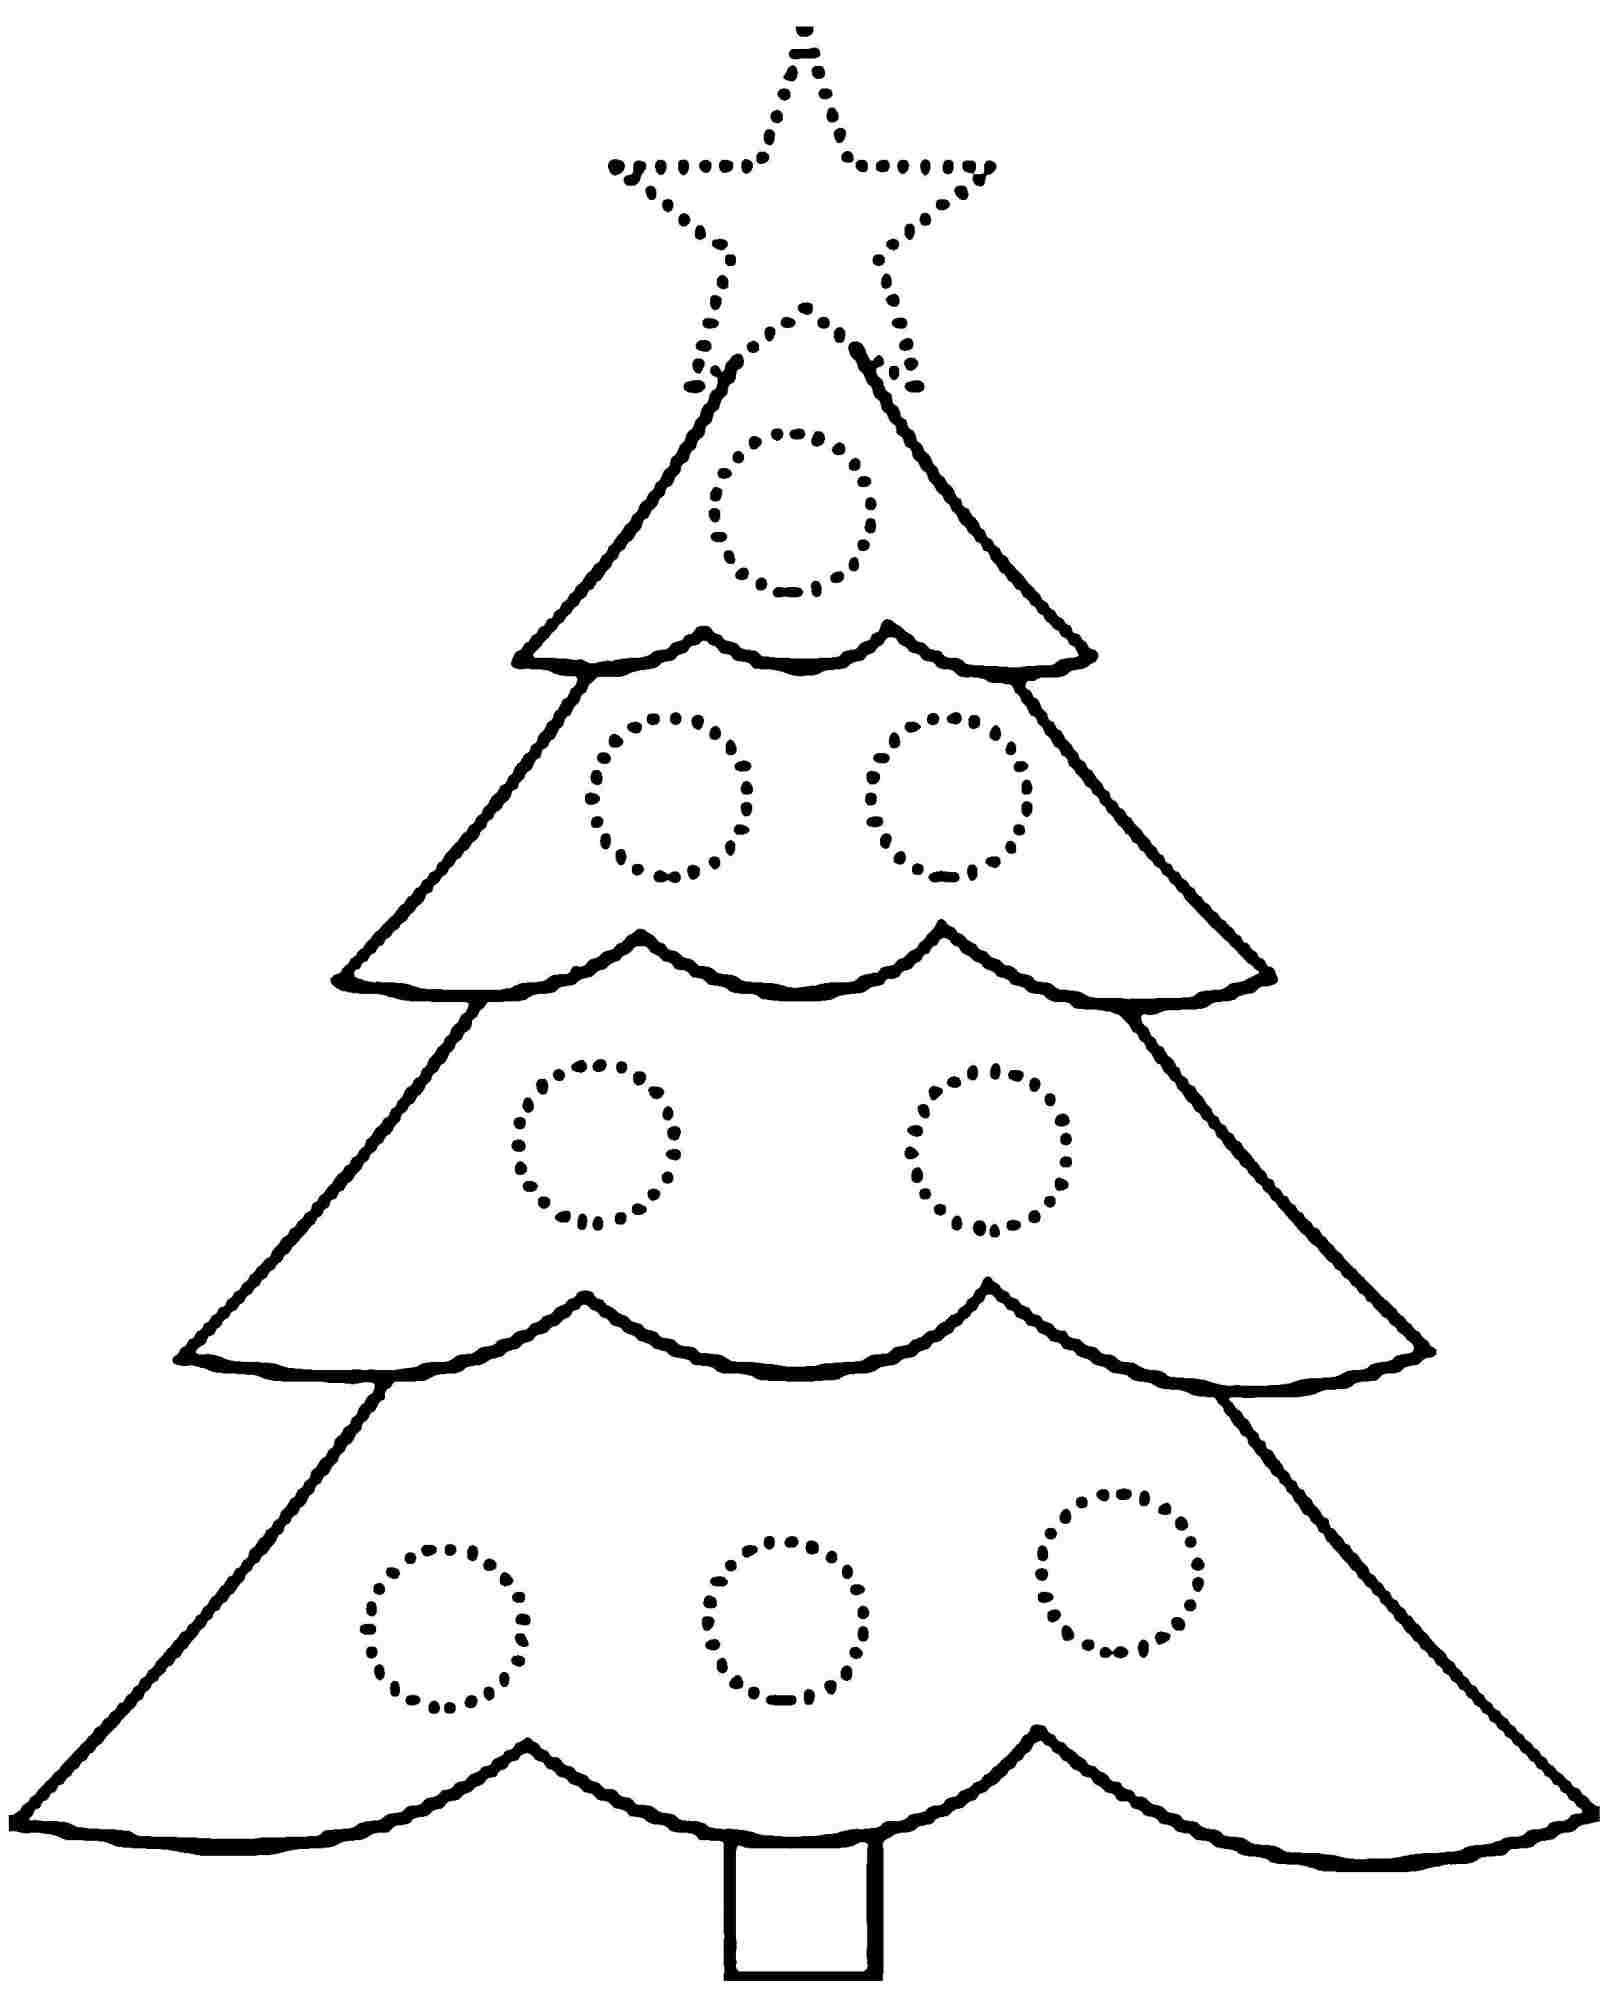 Coloring pages xmas decorations - Images For Christmas Tree With Presents Coloring Pages